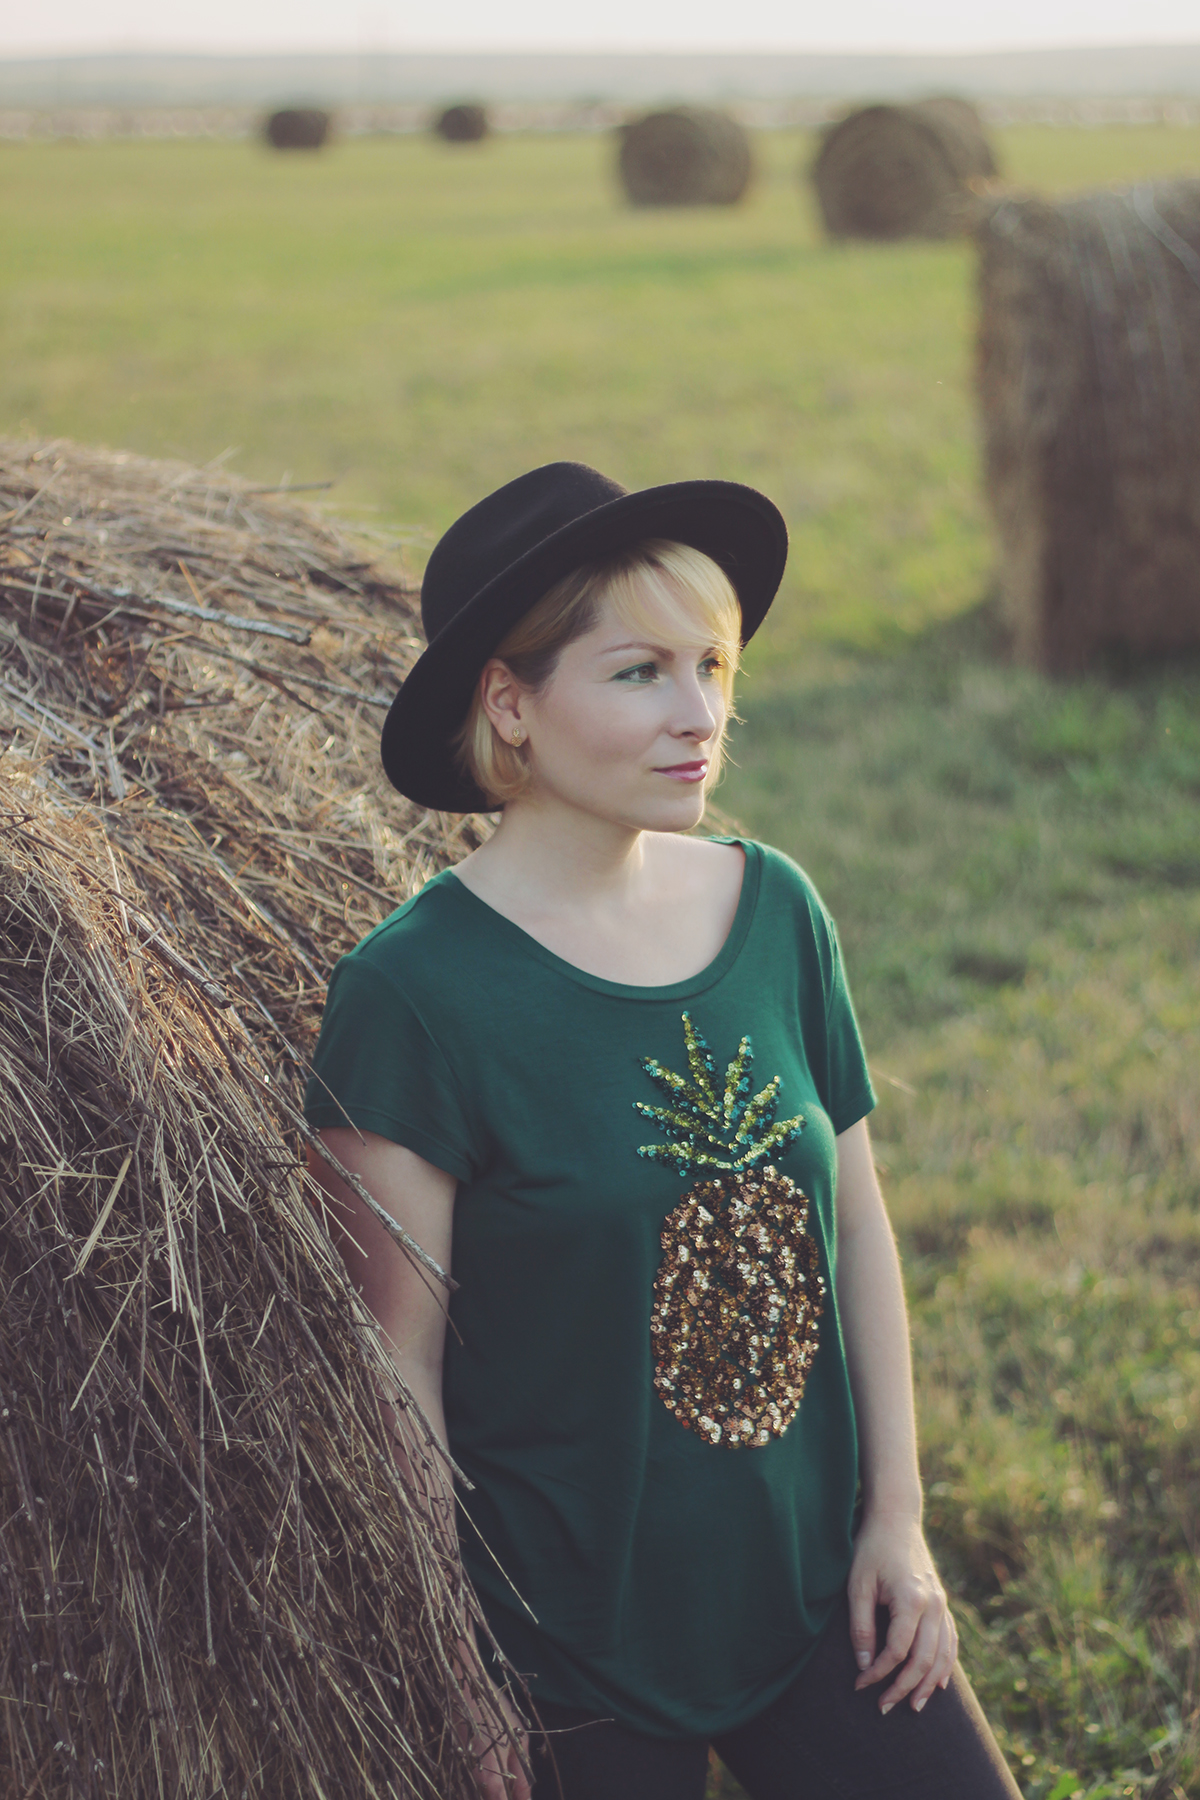 pineapple t-shirt and hat